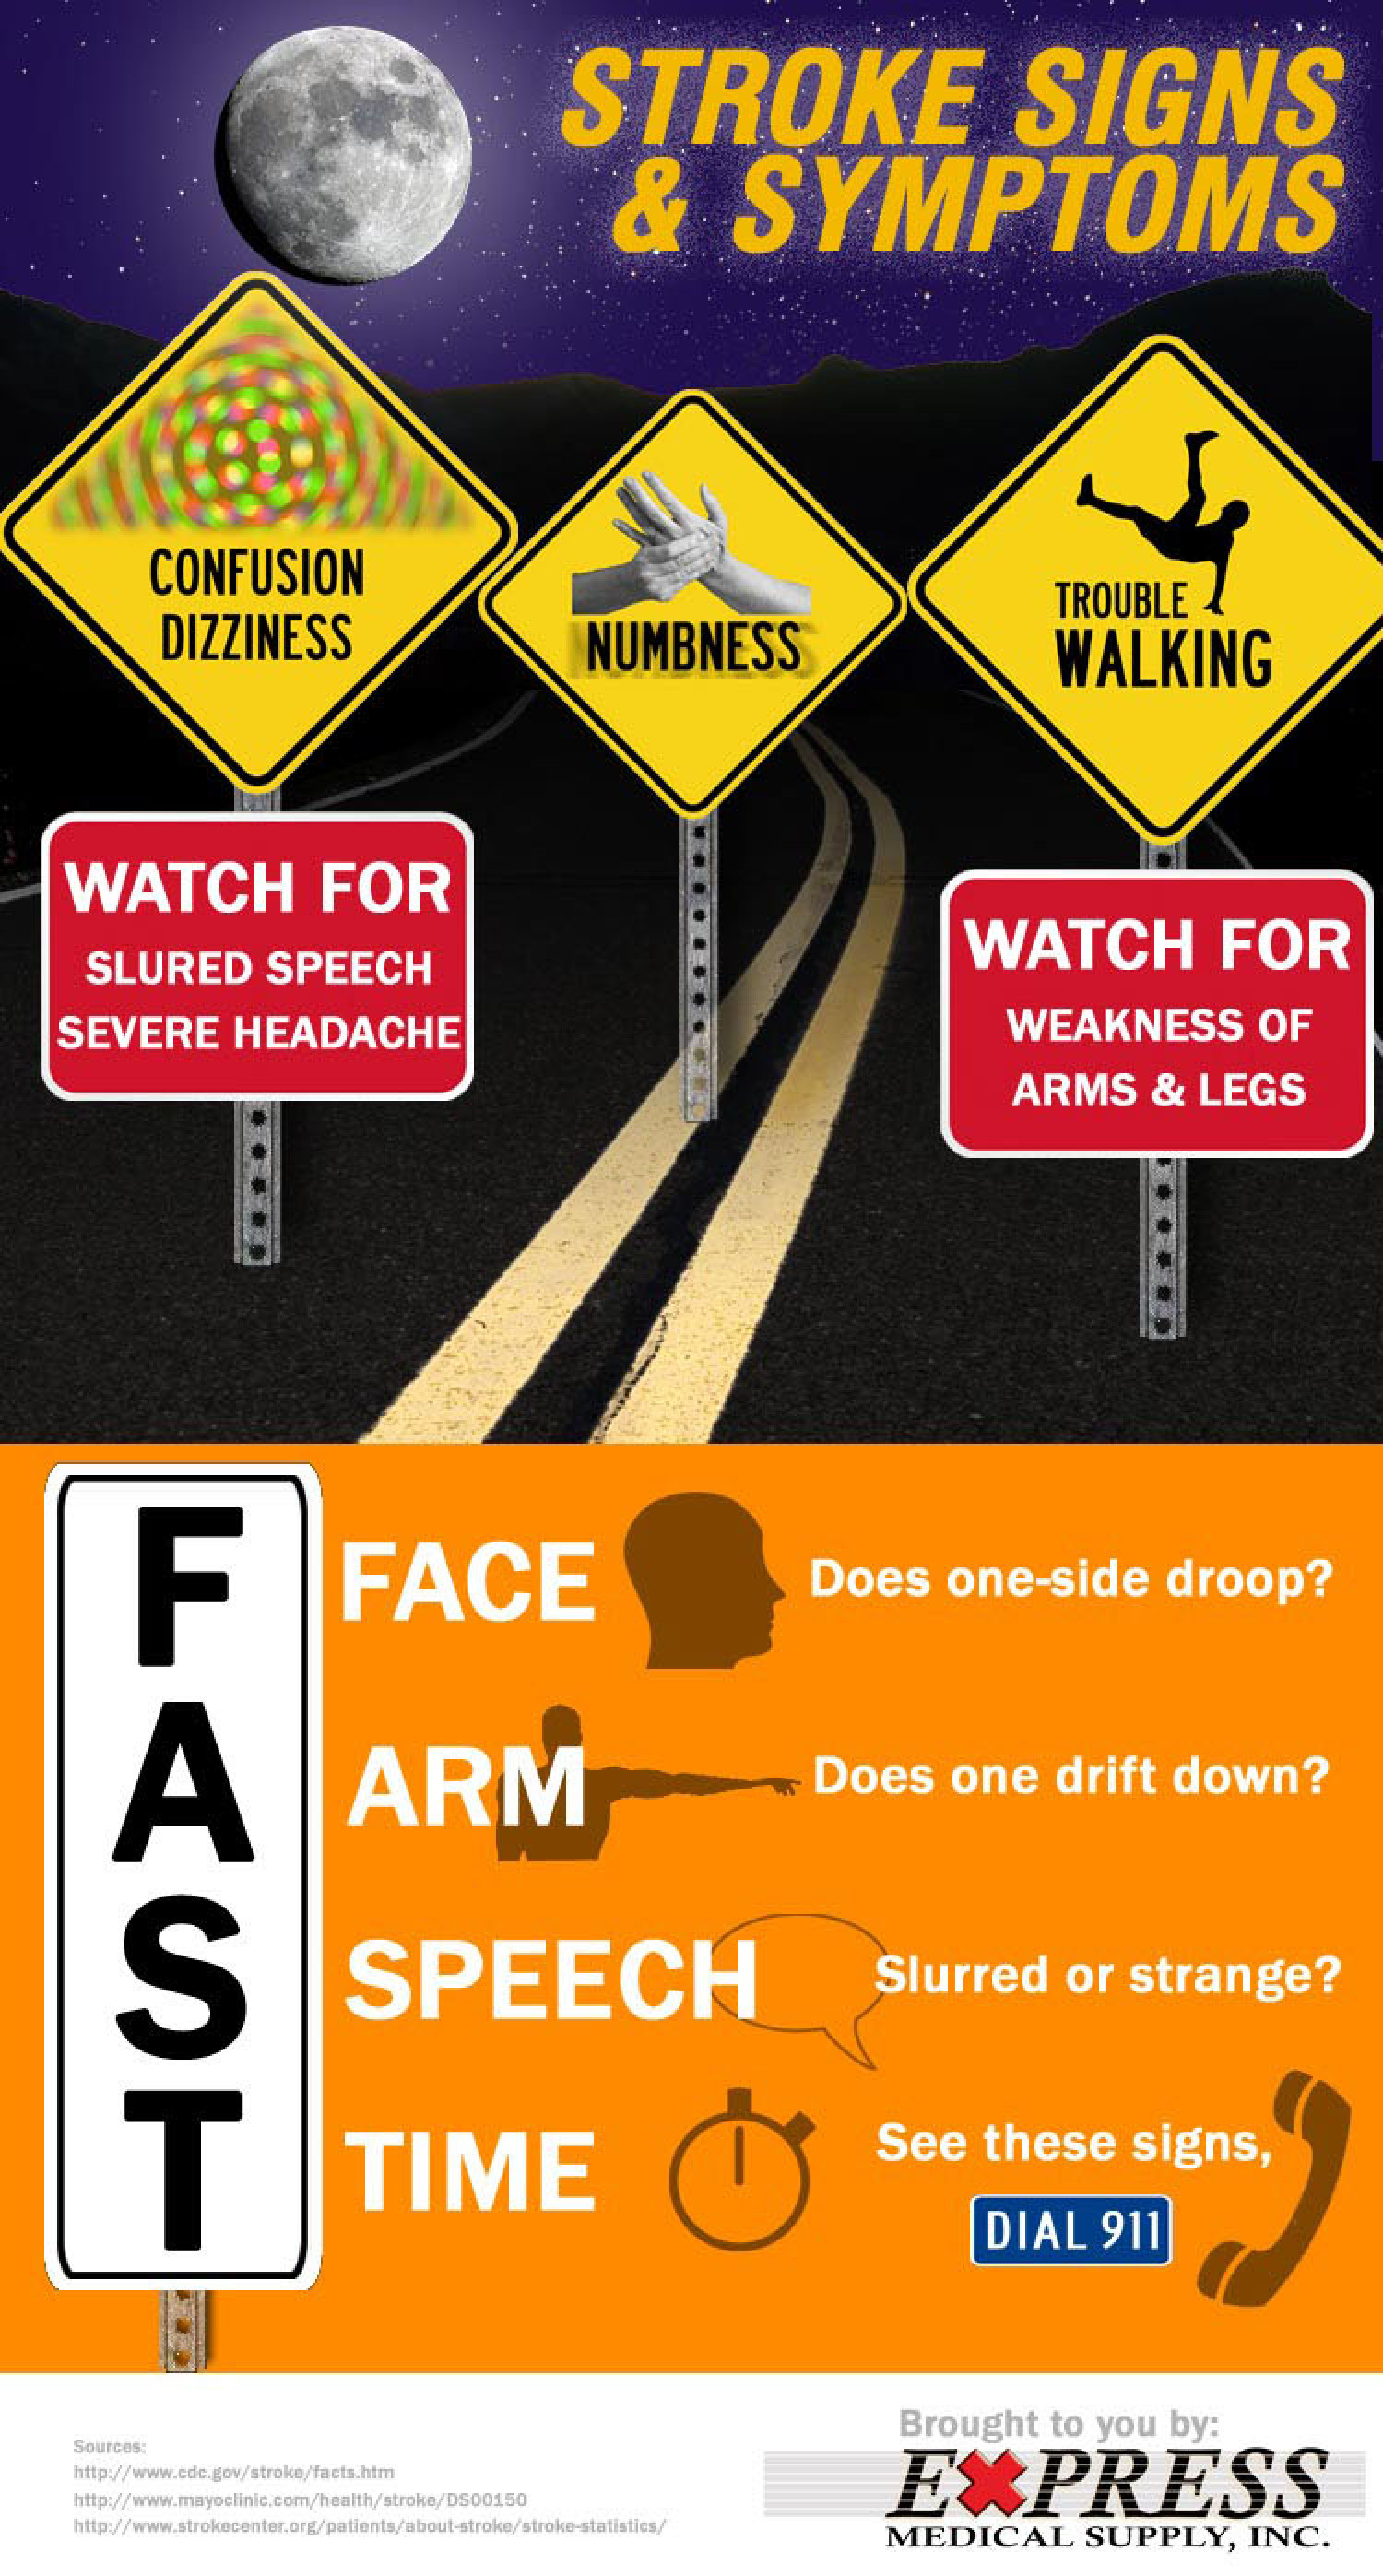 Stroke Signs and Symptoms Infographic